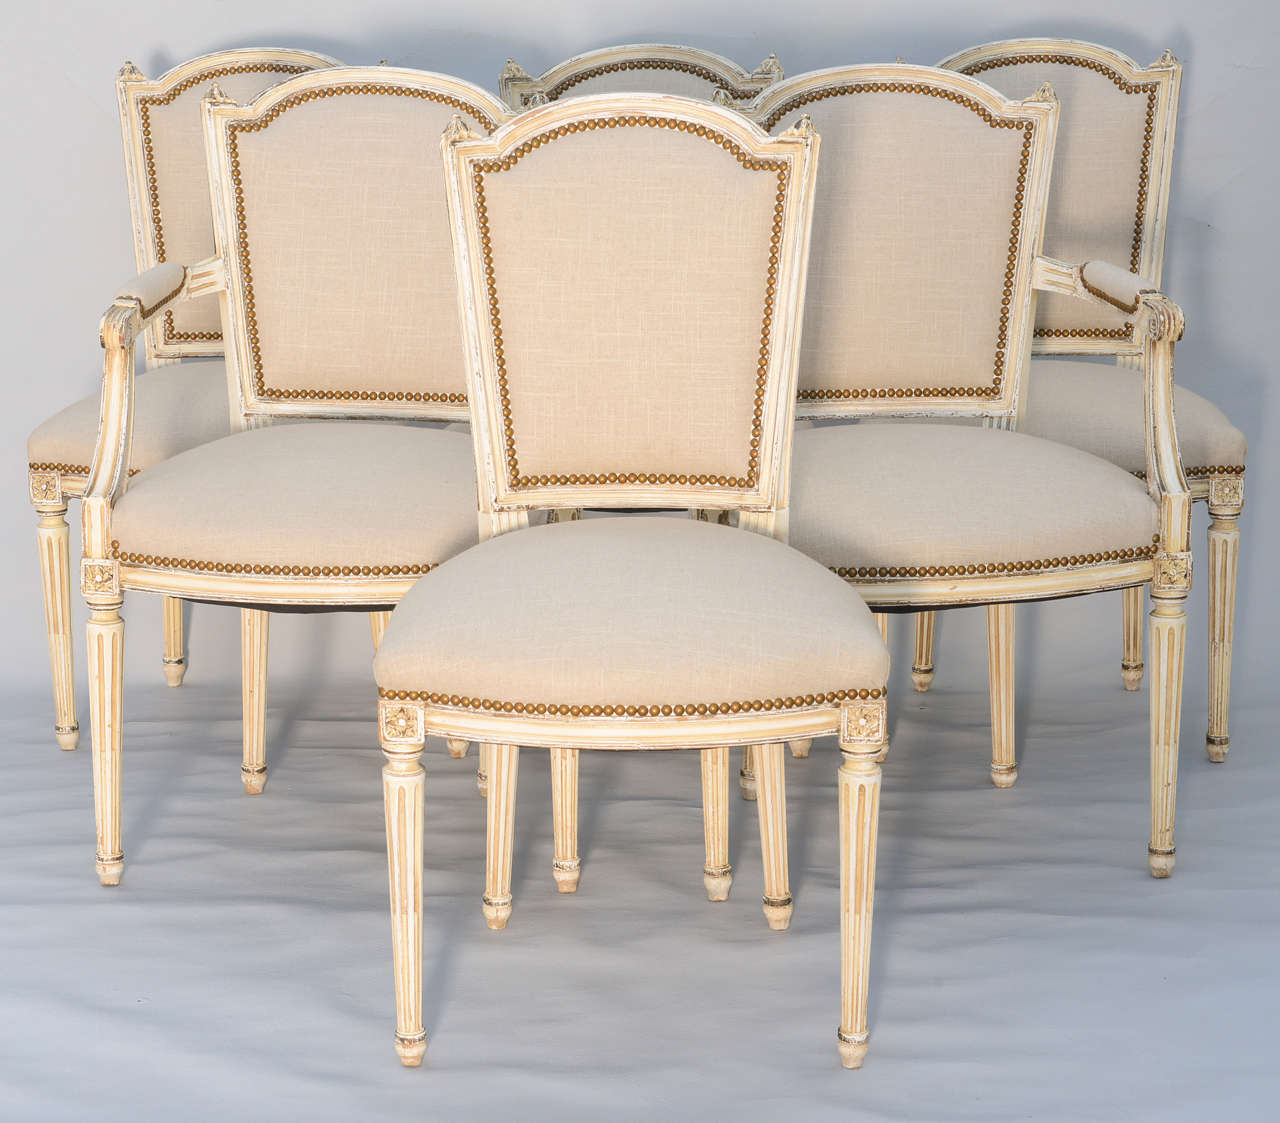 French Dining Chairs Set Of Six French Dining Room Louis Xvi Chairs At 1stdibs